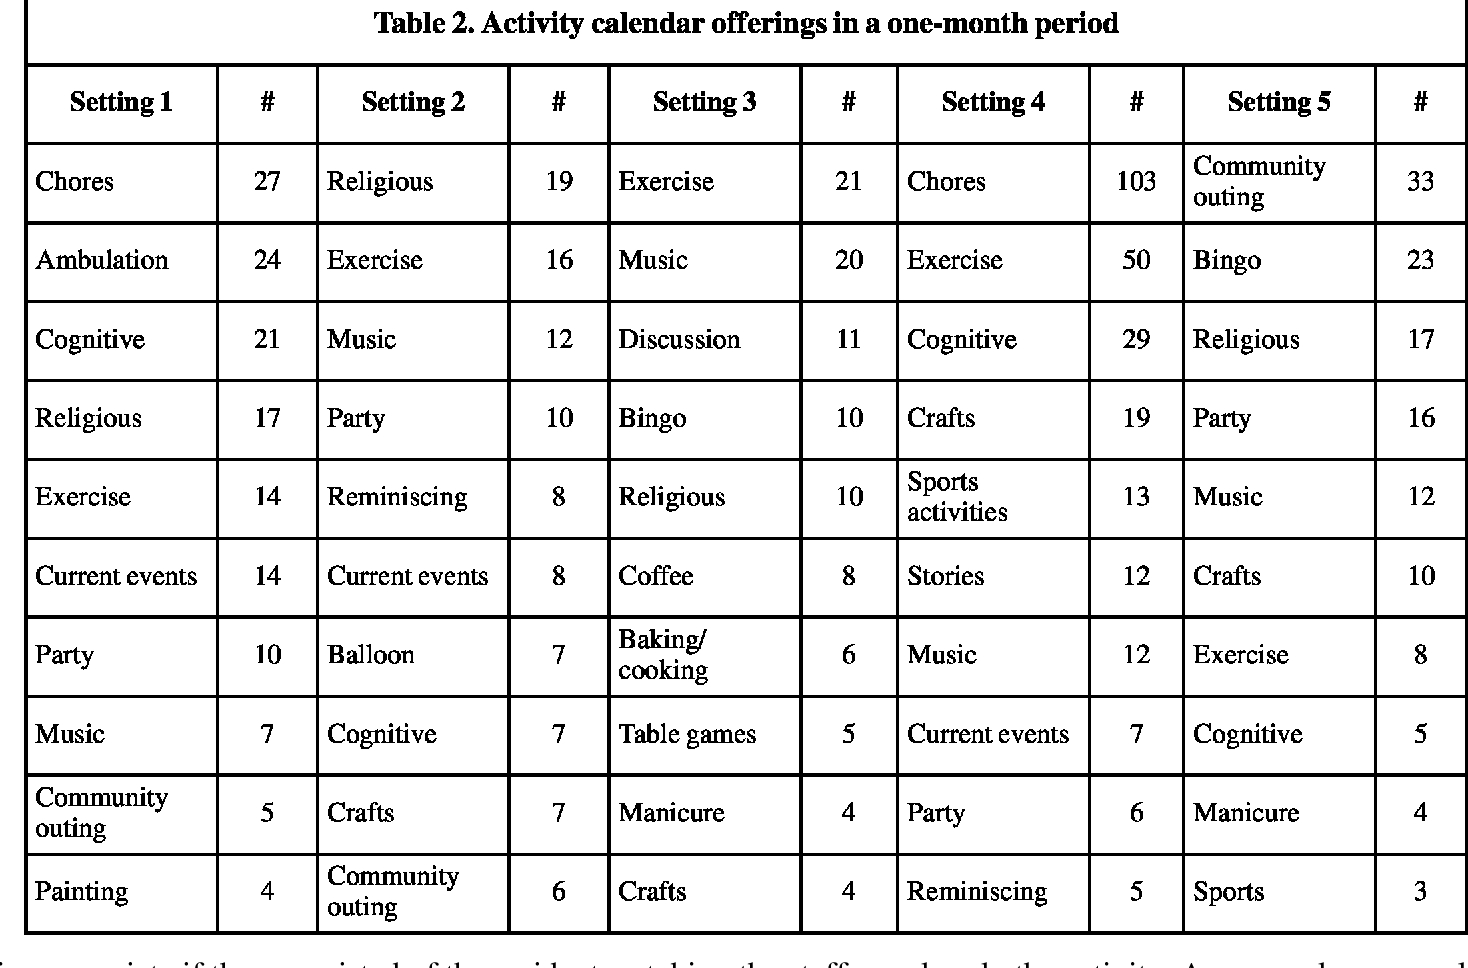 Pdf] Activity Calendars For Older Adults With Dementia: What